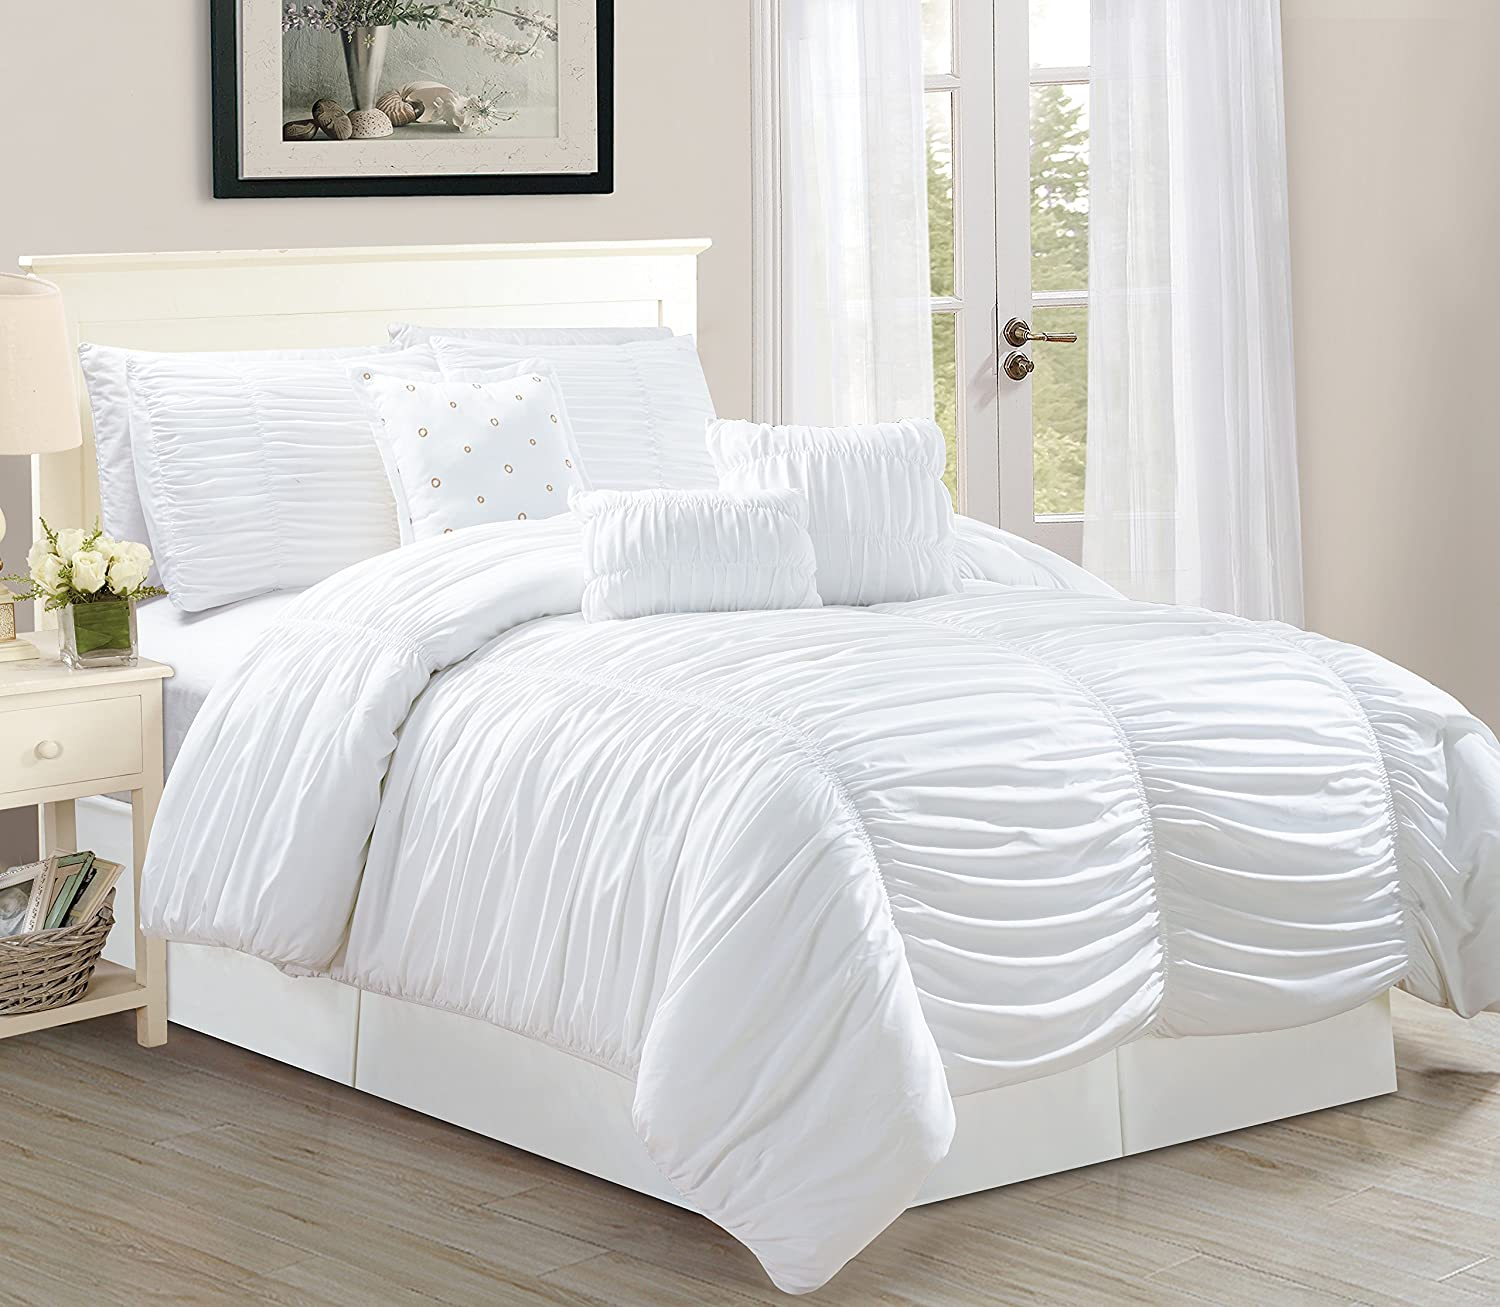 navy decor king set dp sets comforter lush amazon home aster coral quilted kitchen piece com